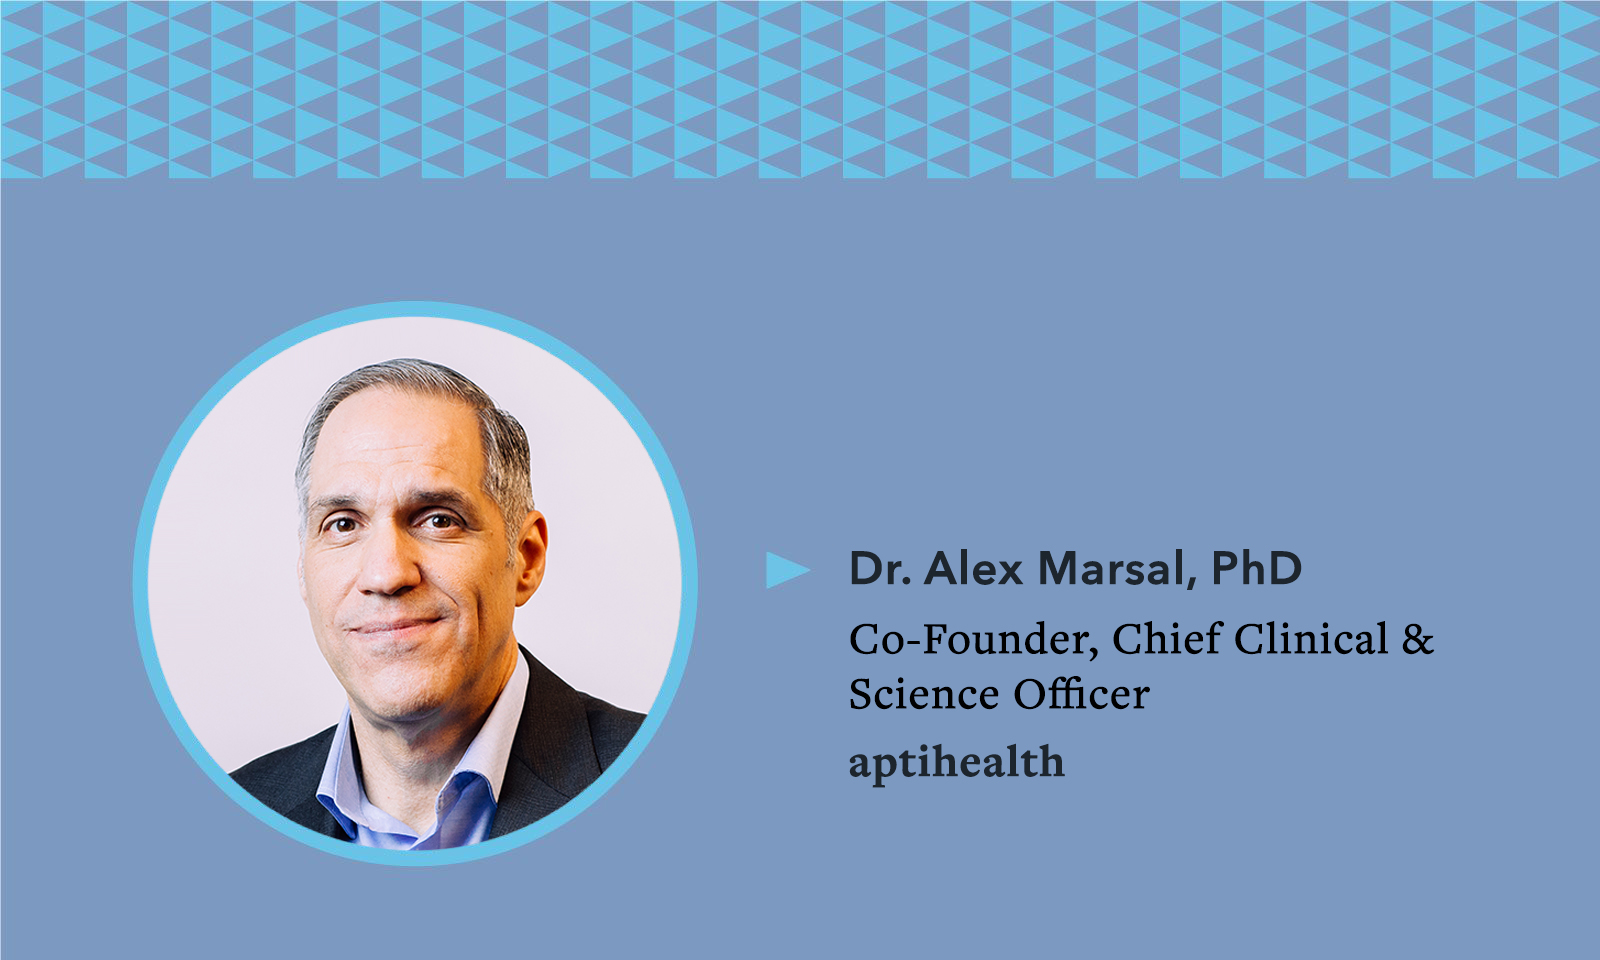 Mental Health Awareness Month - Company Spotlight: Dr. Alex Marsal and aptihealth